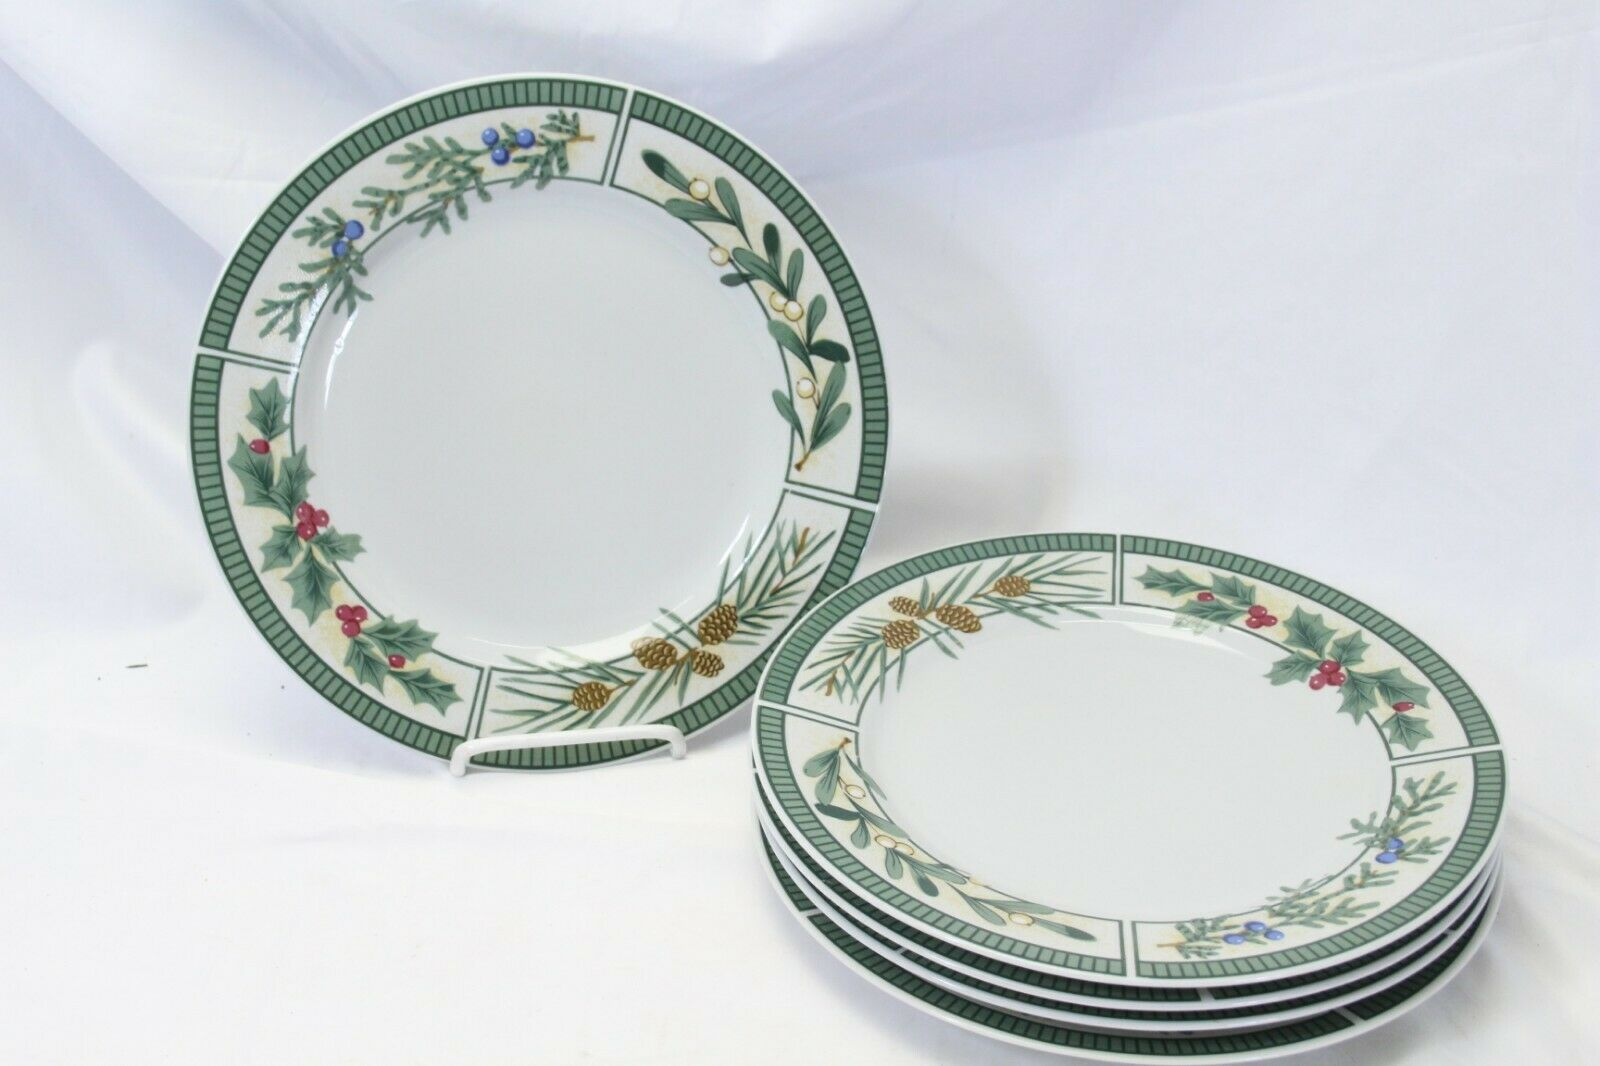 Fairfield Wintergreen Plates and Bowls Lot of 15  Christmas image 2